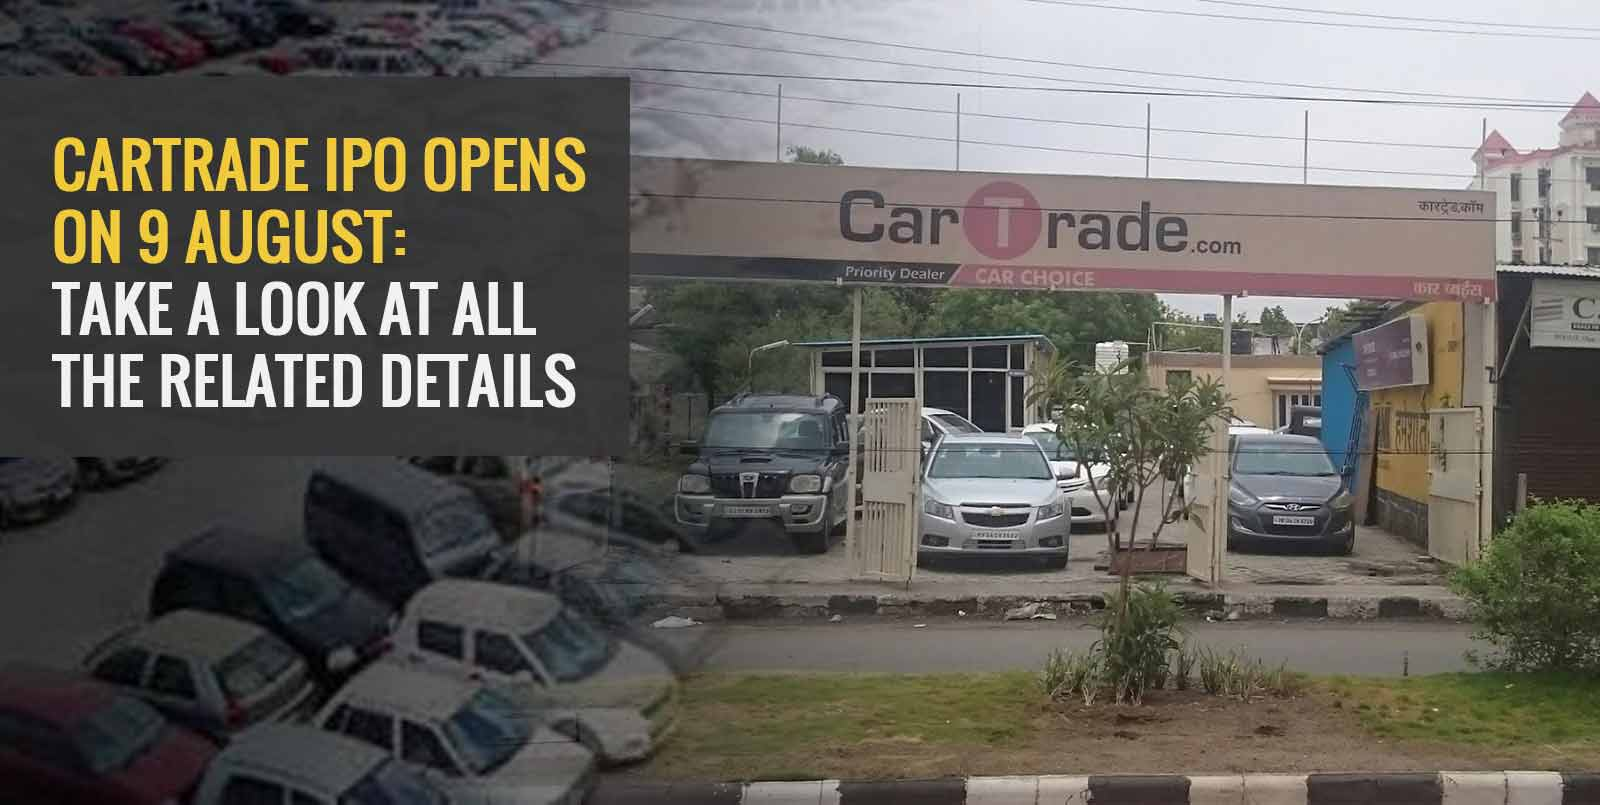 CarTrade IPO Opens on 9 August: Take a Look at All the Related Details